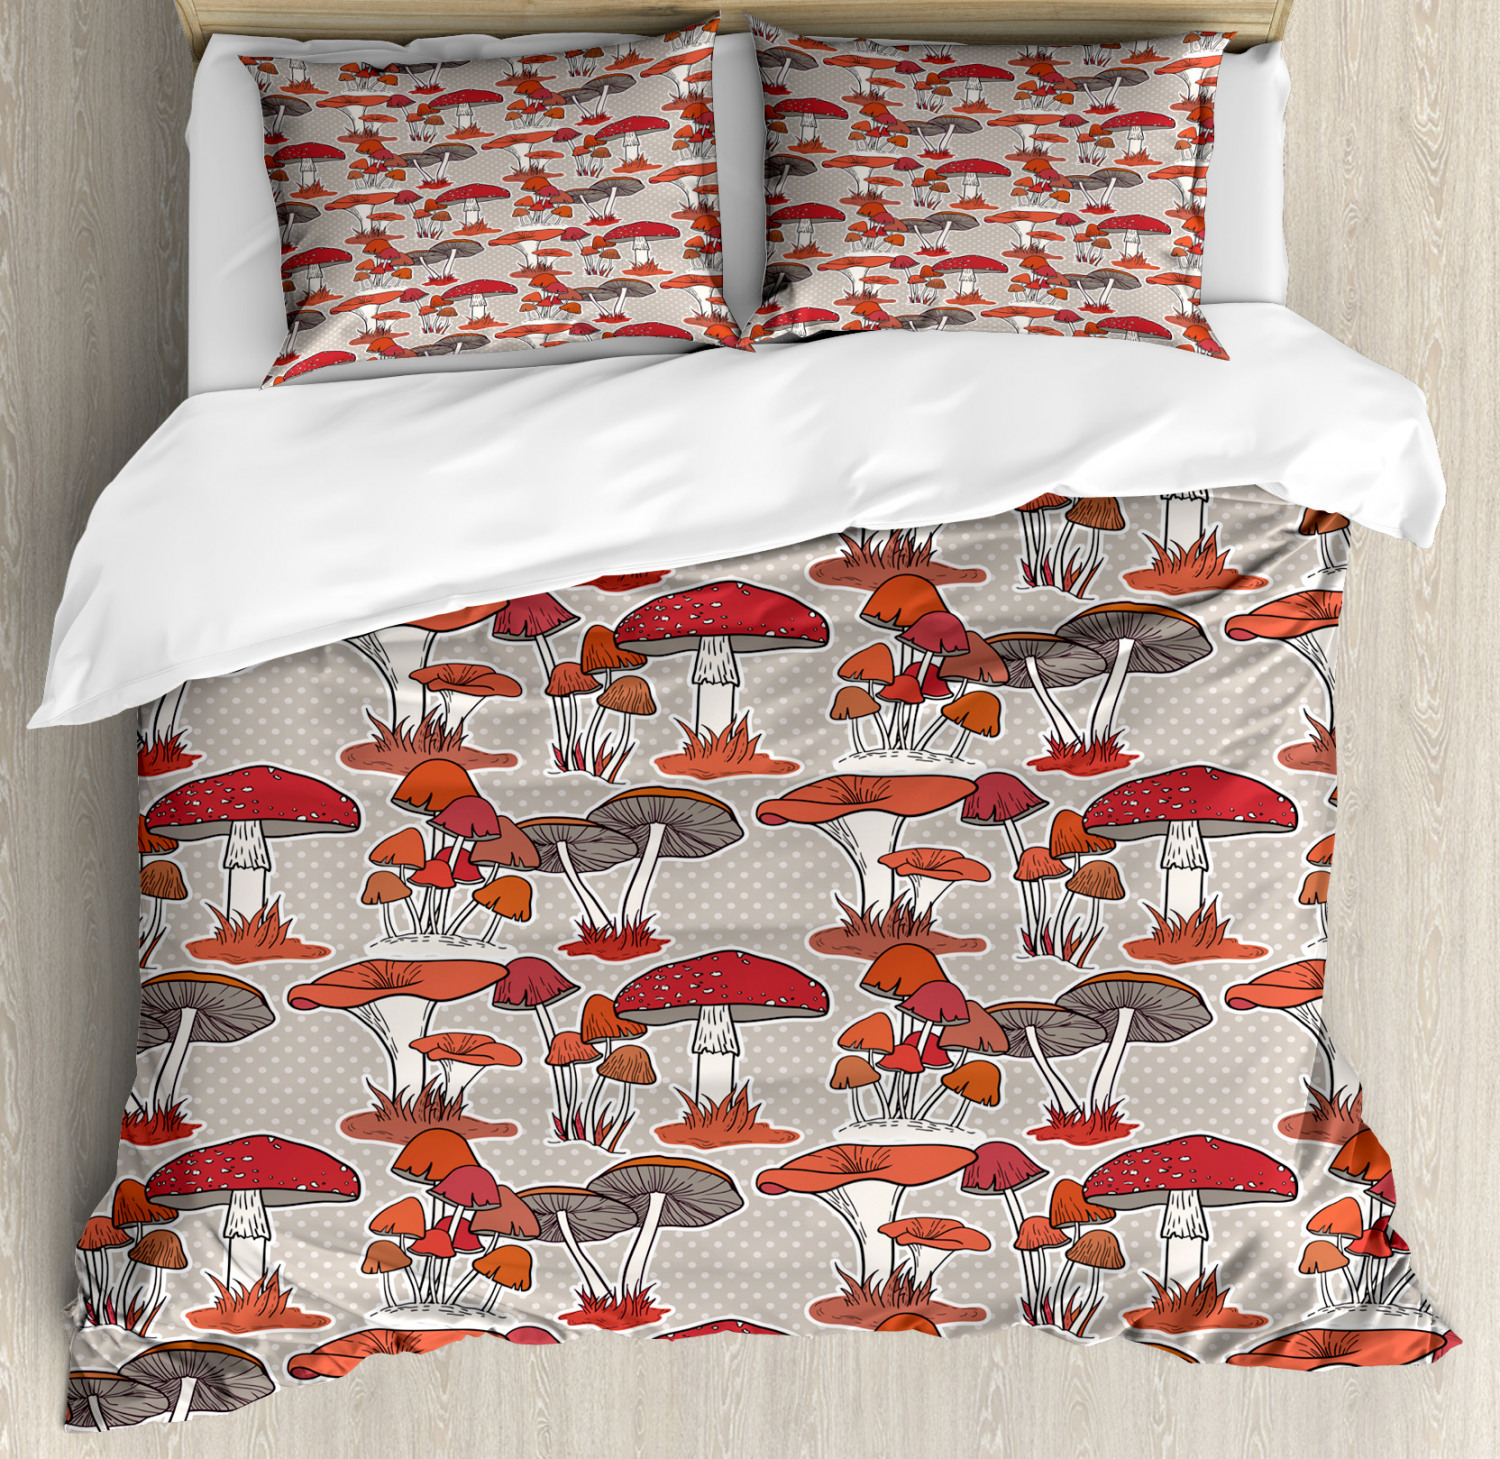 Woodland Mushroom Duvet Cover Set Twin Queen King Sizes with